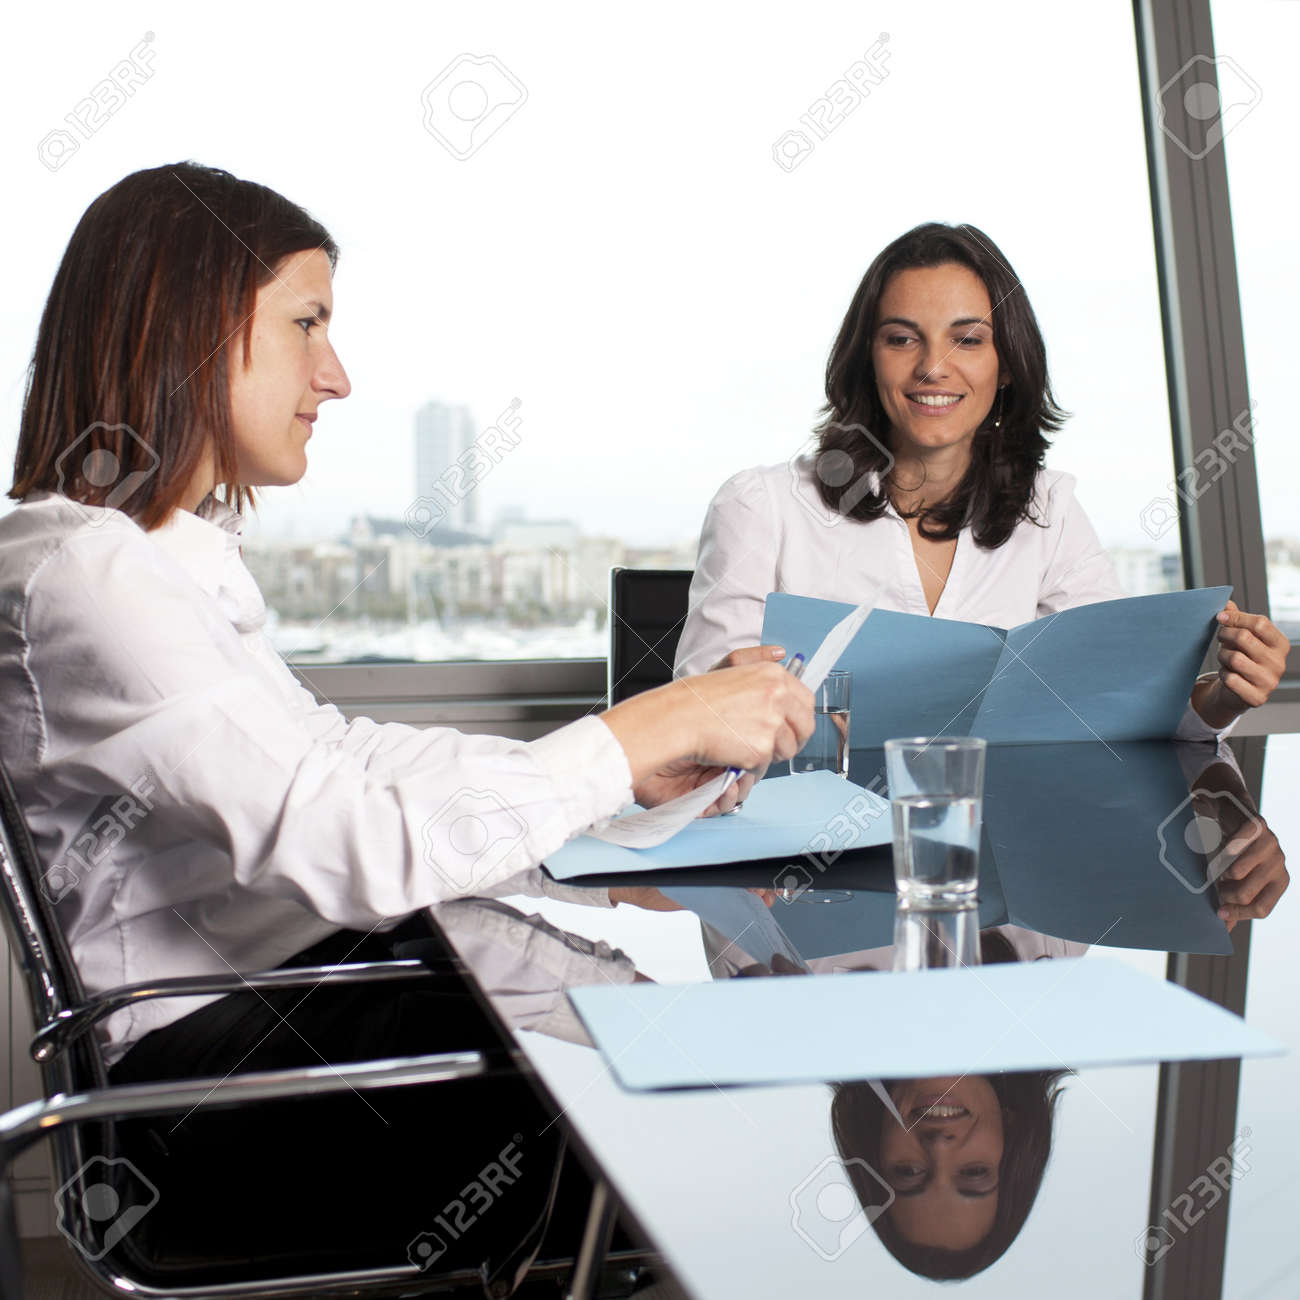 HR expert smiling during job interview Stock Photo - 16449102